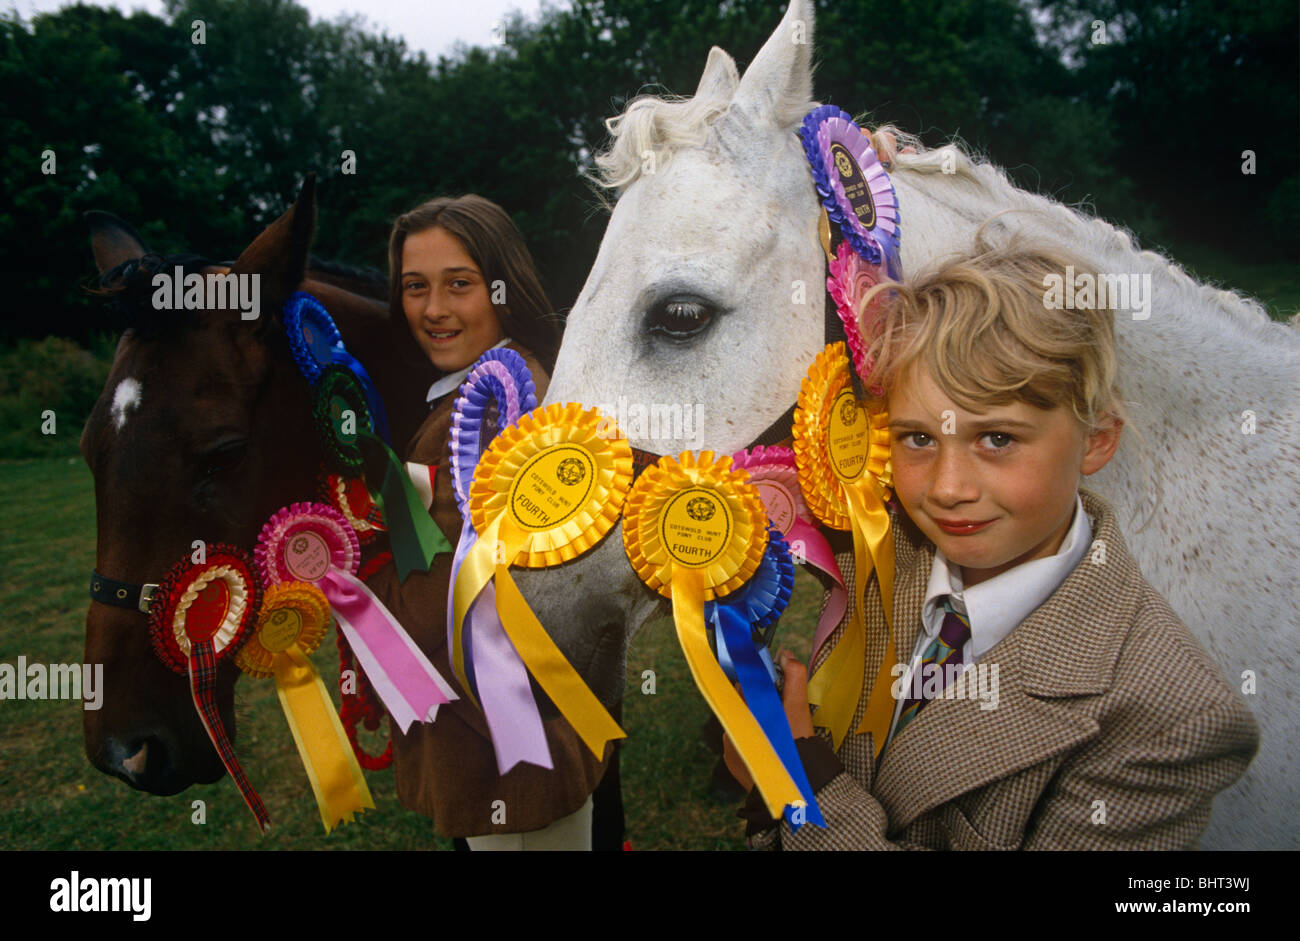 Two young girls stand with their beloved rosette-winning ponies at a gymkhana in Cheltenham, Gloucestershire. - Stock Image